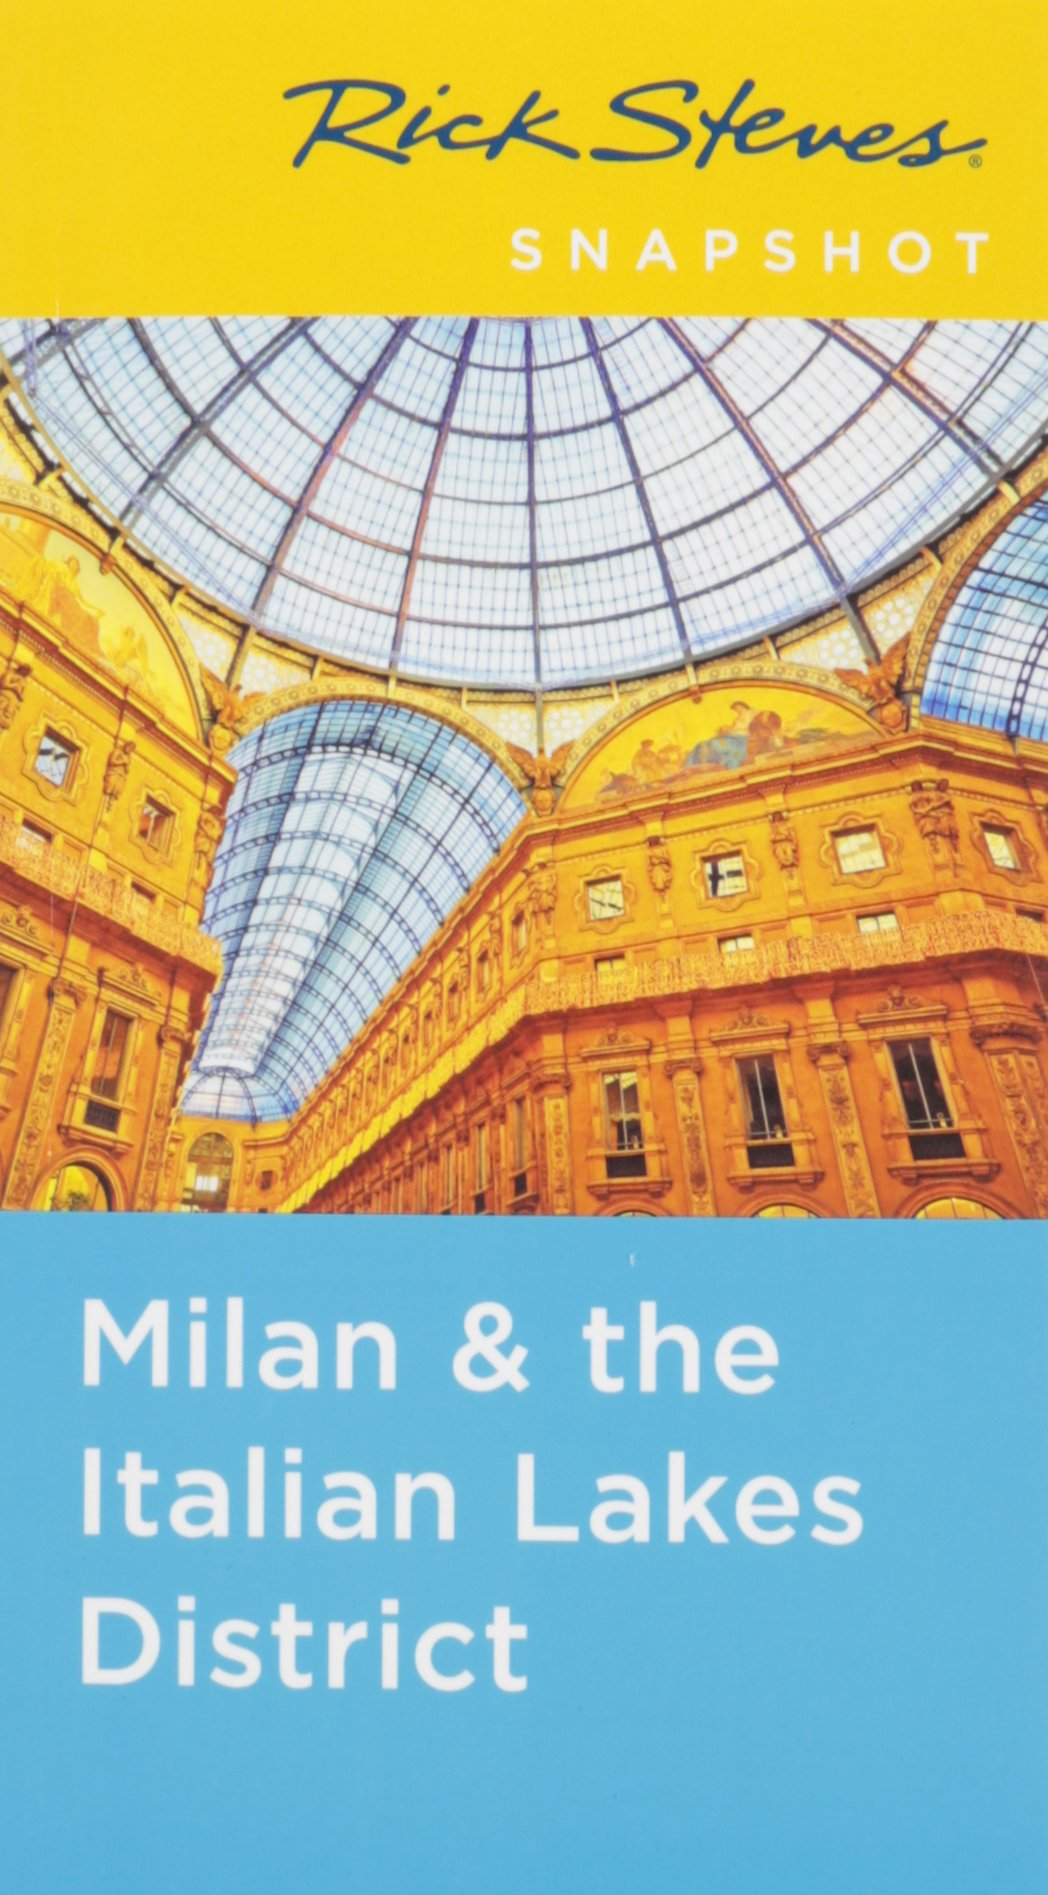 Rick Steves Snapshot Milan /& the Italian Lakes District